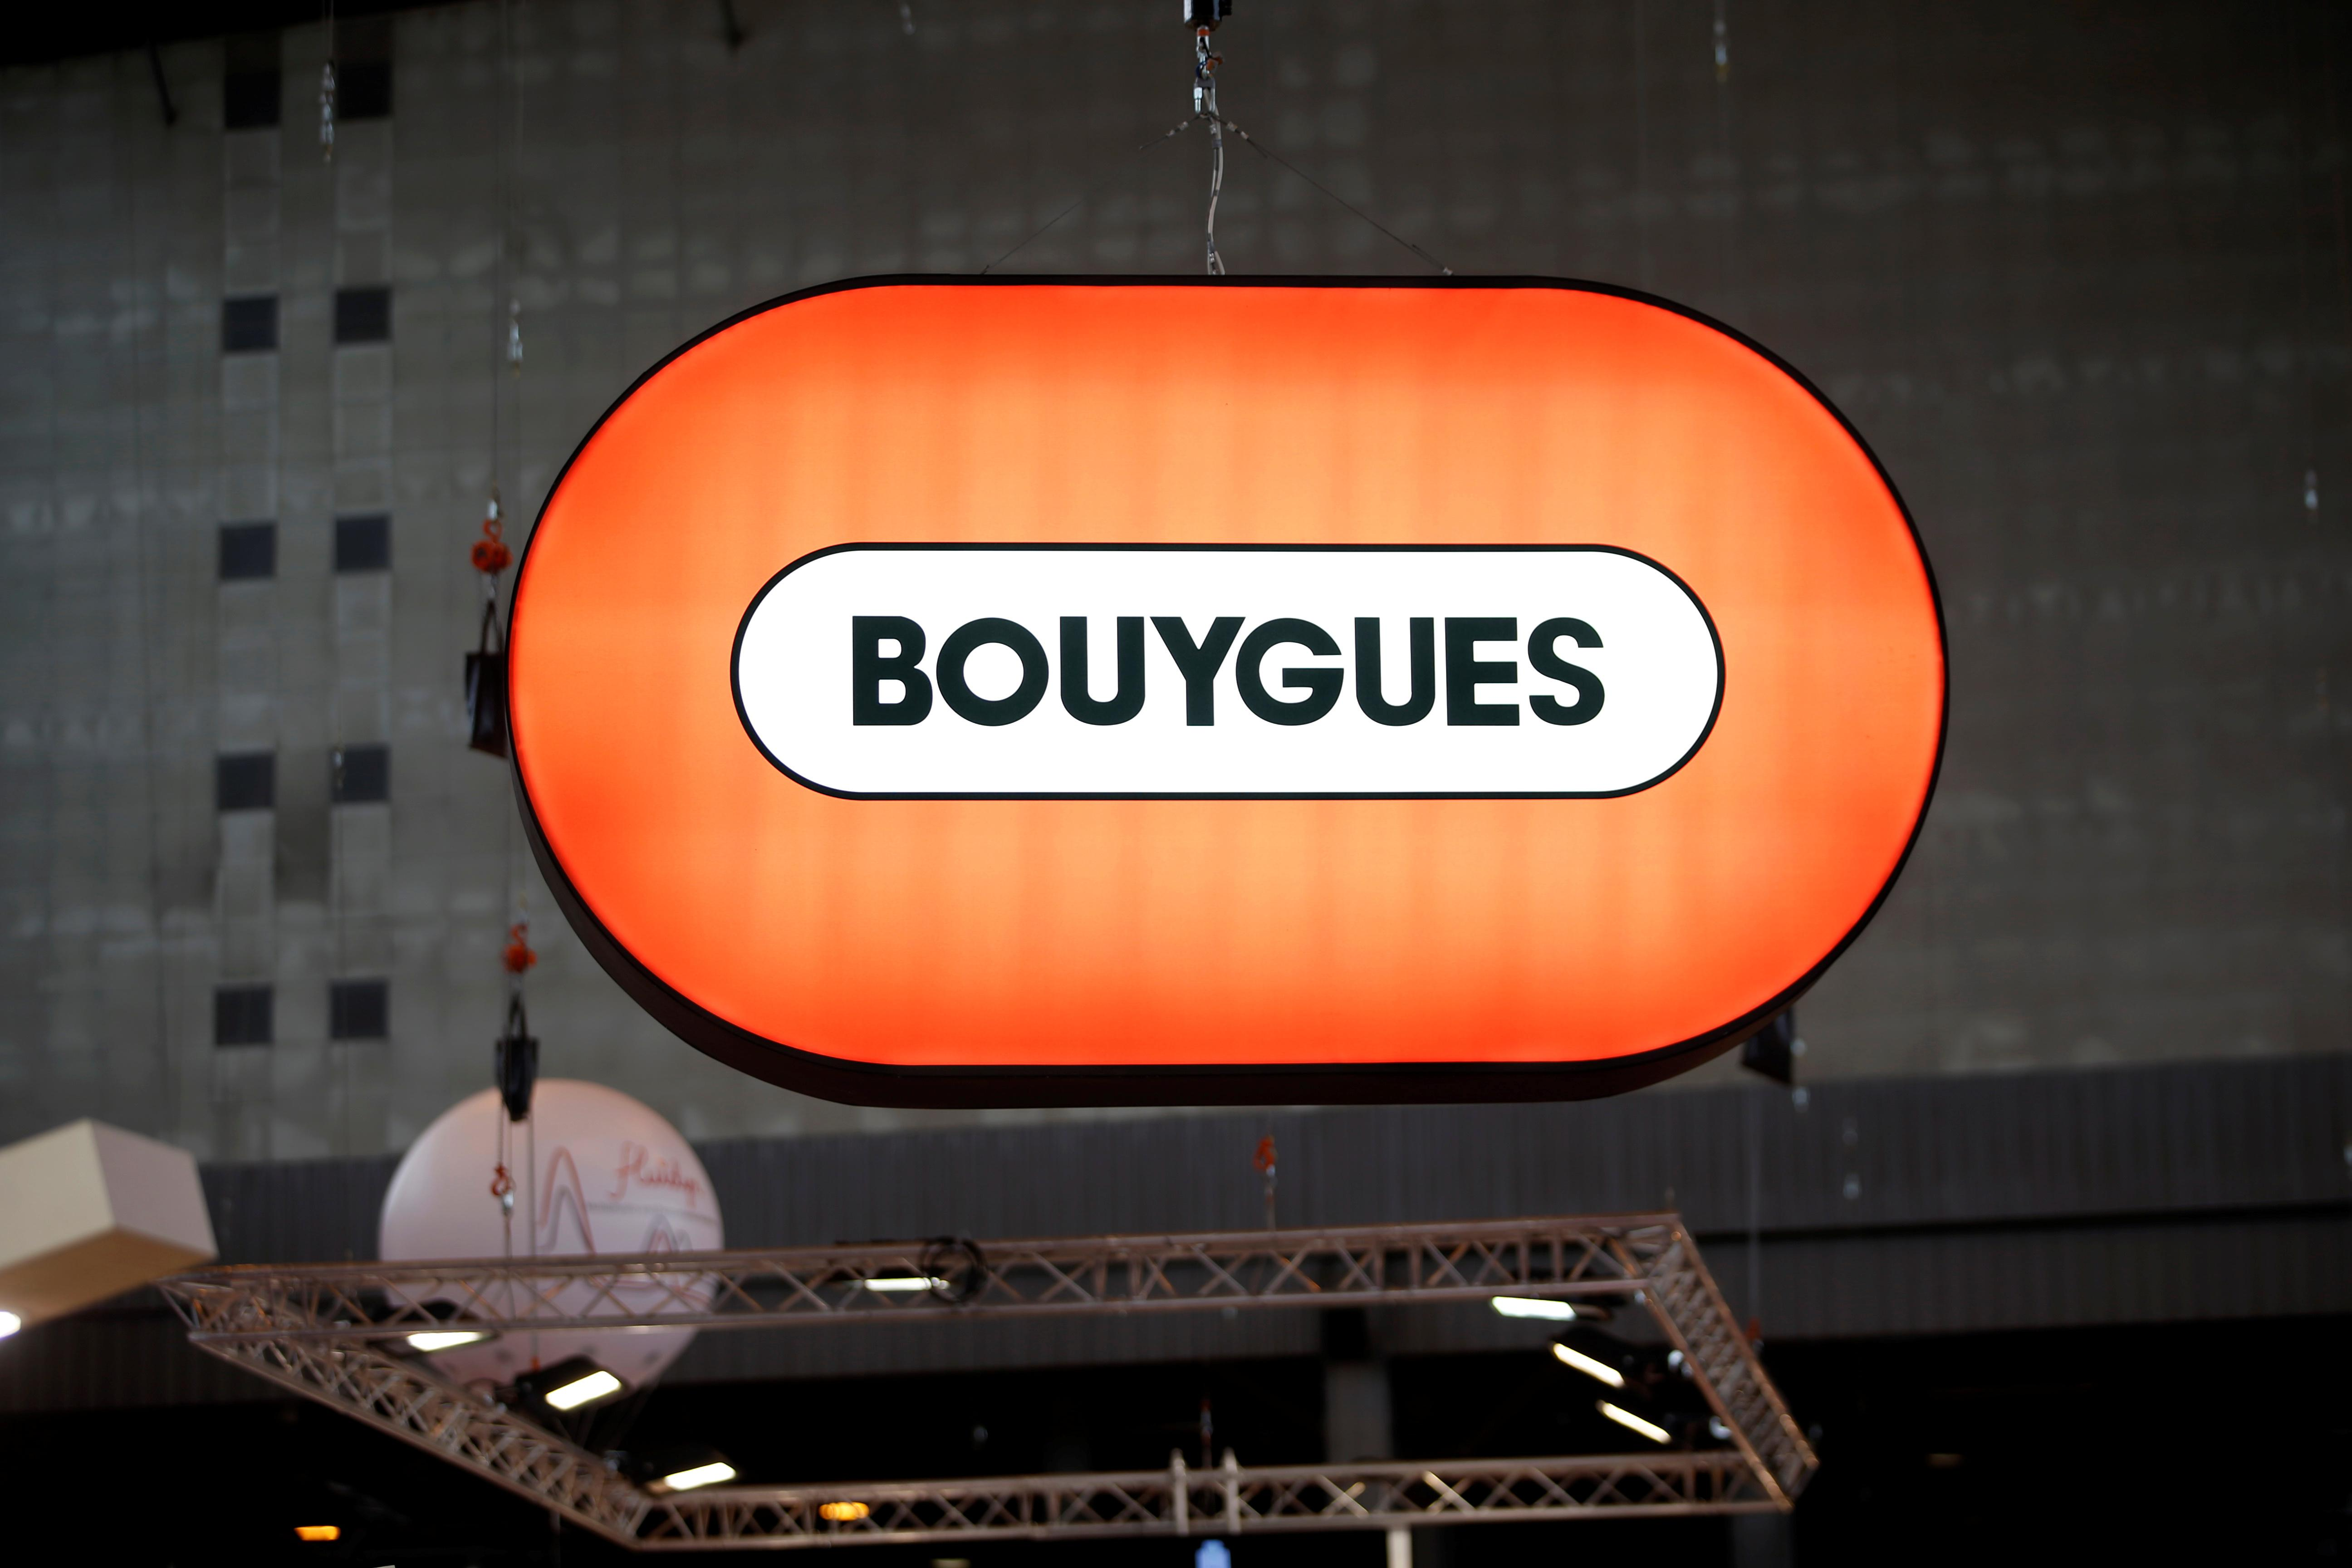 Conglomerate Bouygues bolstered by strength in telecoms arm